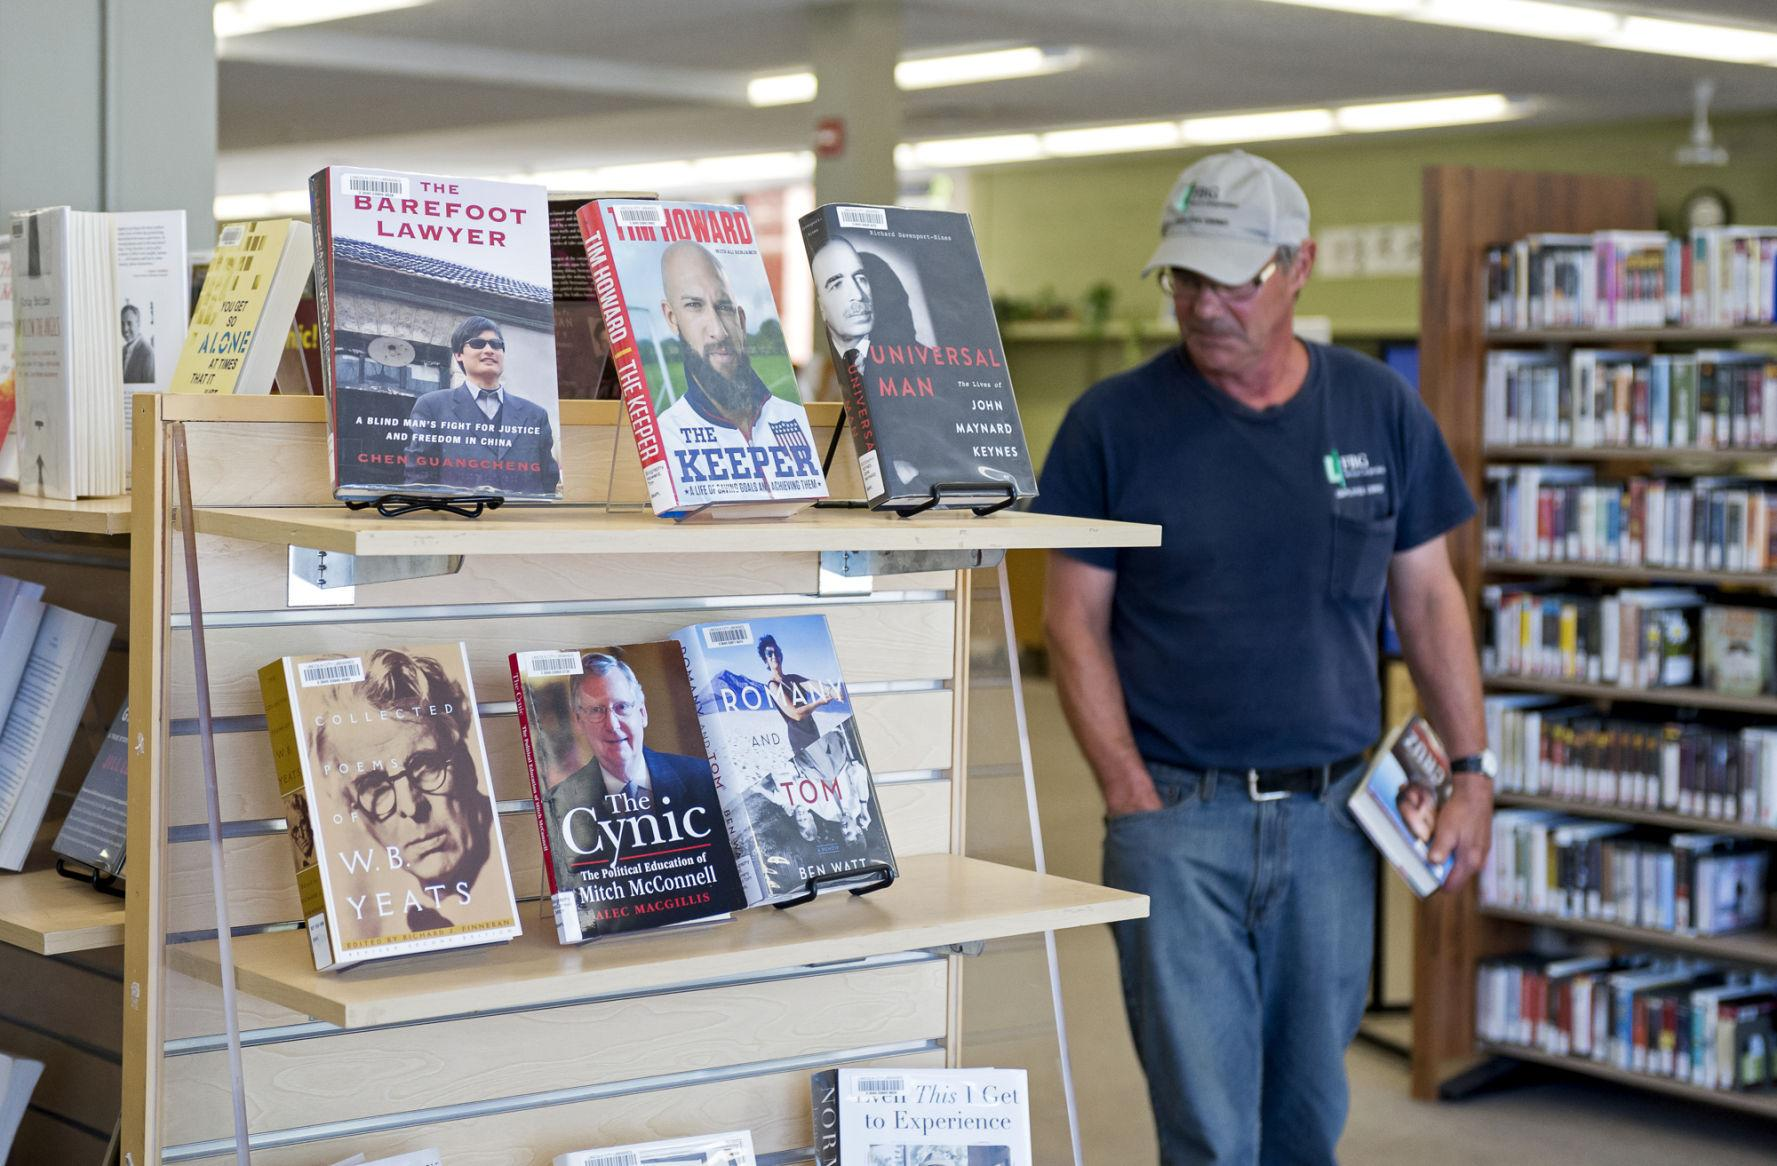 Red Lobster Lincoln Ne Library Boards Under Fire In Other Cities But Not Lincoln